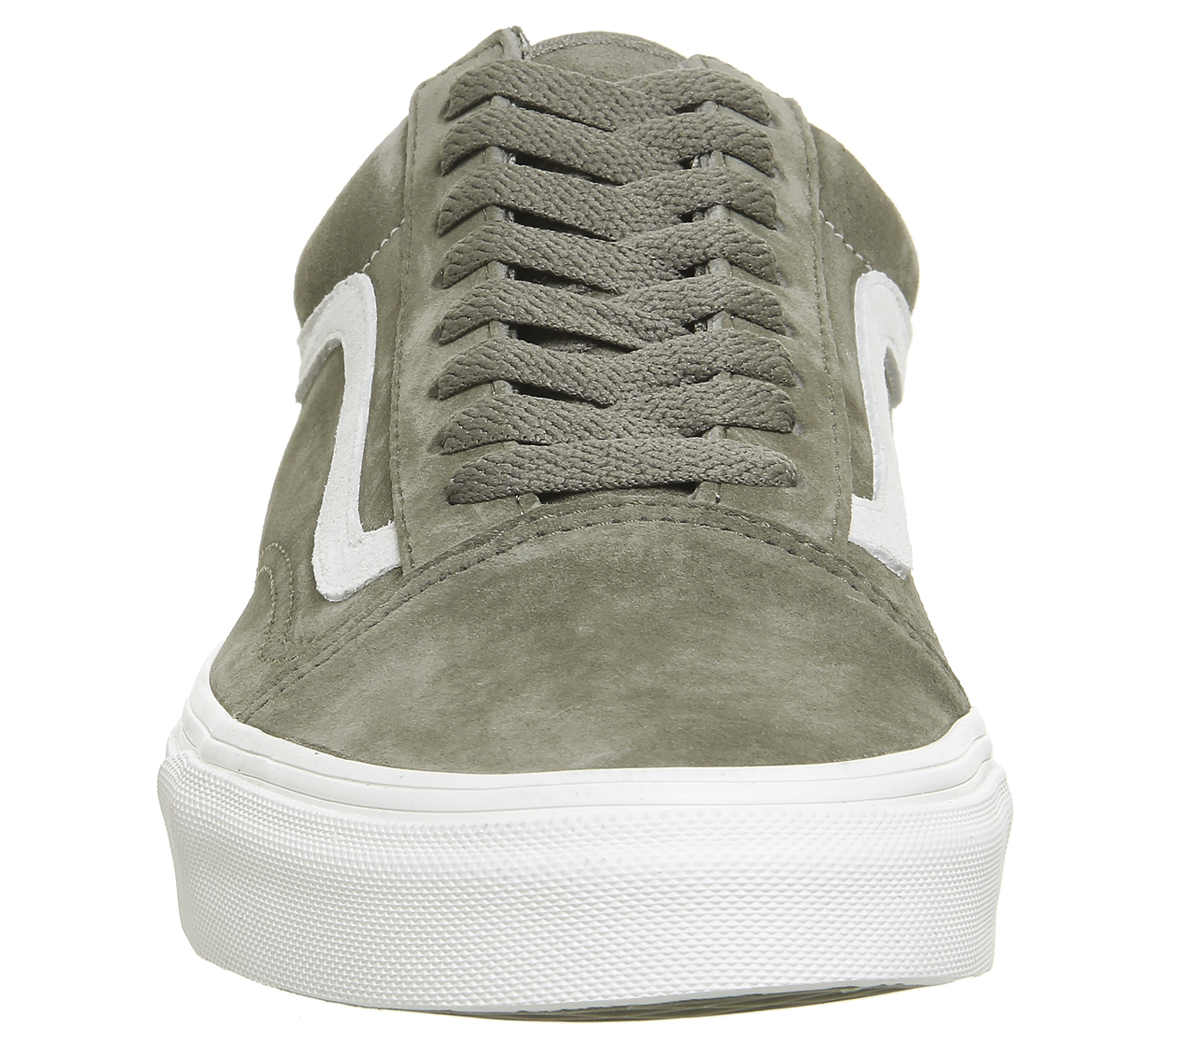 f4bf86ab164 Mens Vans Old Skool Trainers FALLEN ROCK BLANC Trainers Shoes